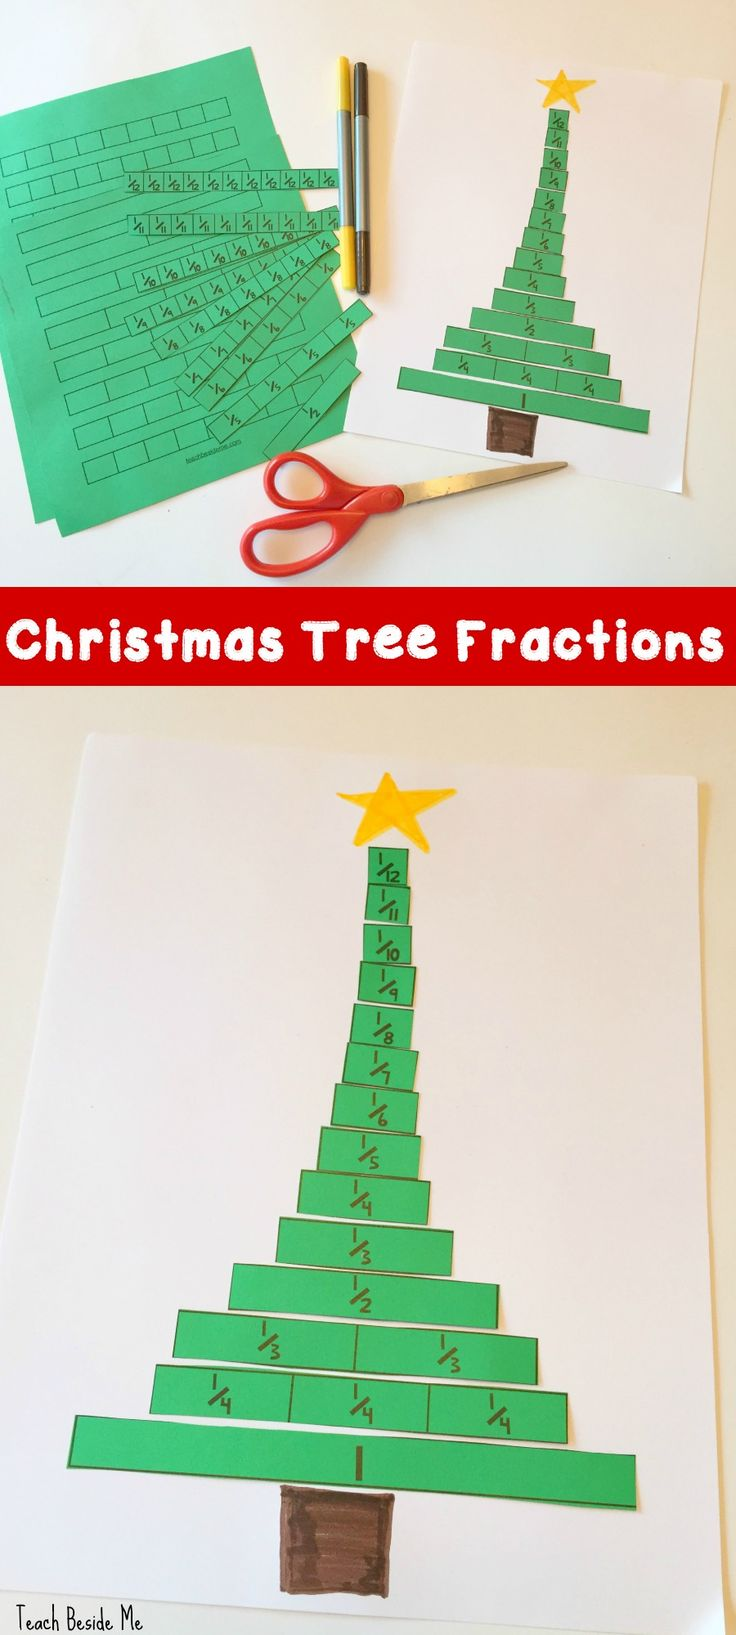 Fun and easy holiday math activity: Christmas Tree Fractions (with free printable) via @karyntripp